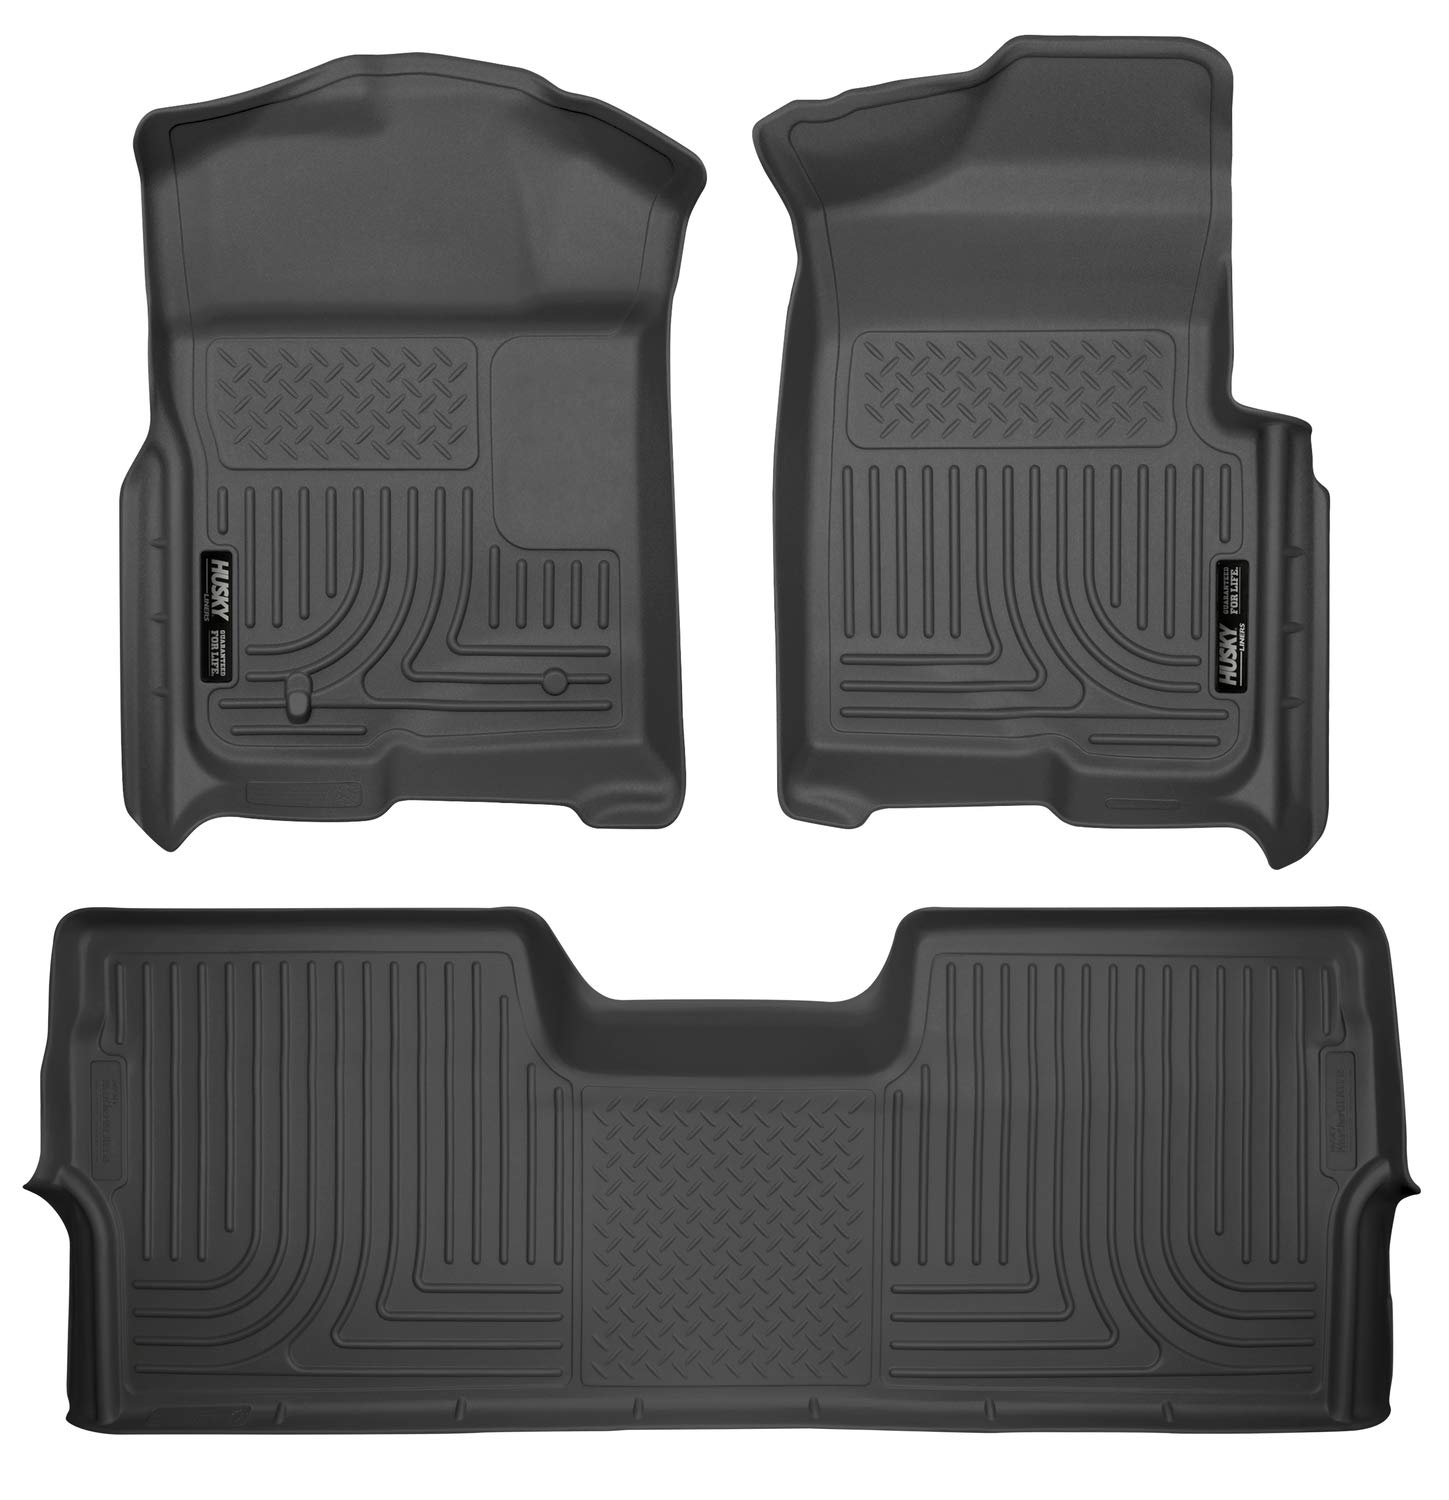 Husky Liners 98331 Black Fits 2009-14 Ford F-150 SuperCrew without Manual Transfer Case Shifter Weatherbeater Front & 2nd Seat Floor Liners (Footwell Coverage)